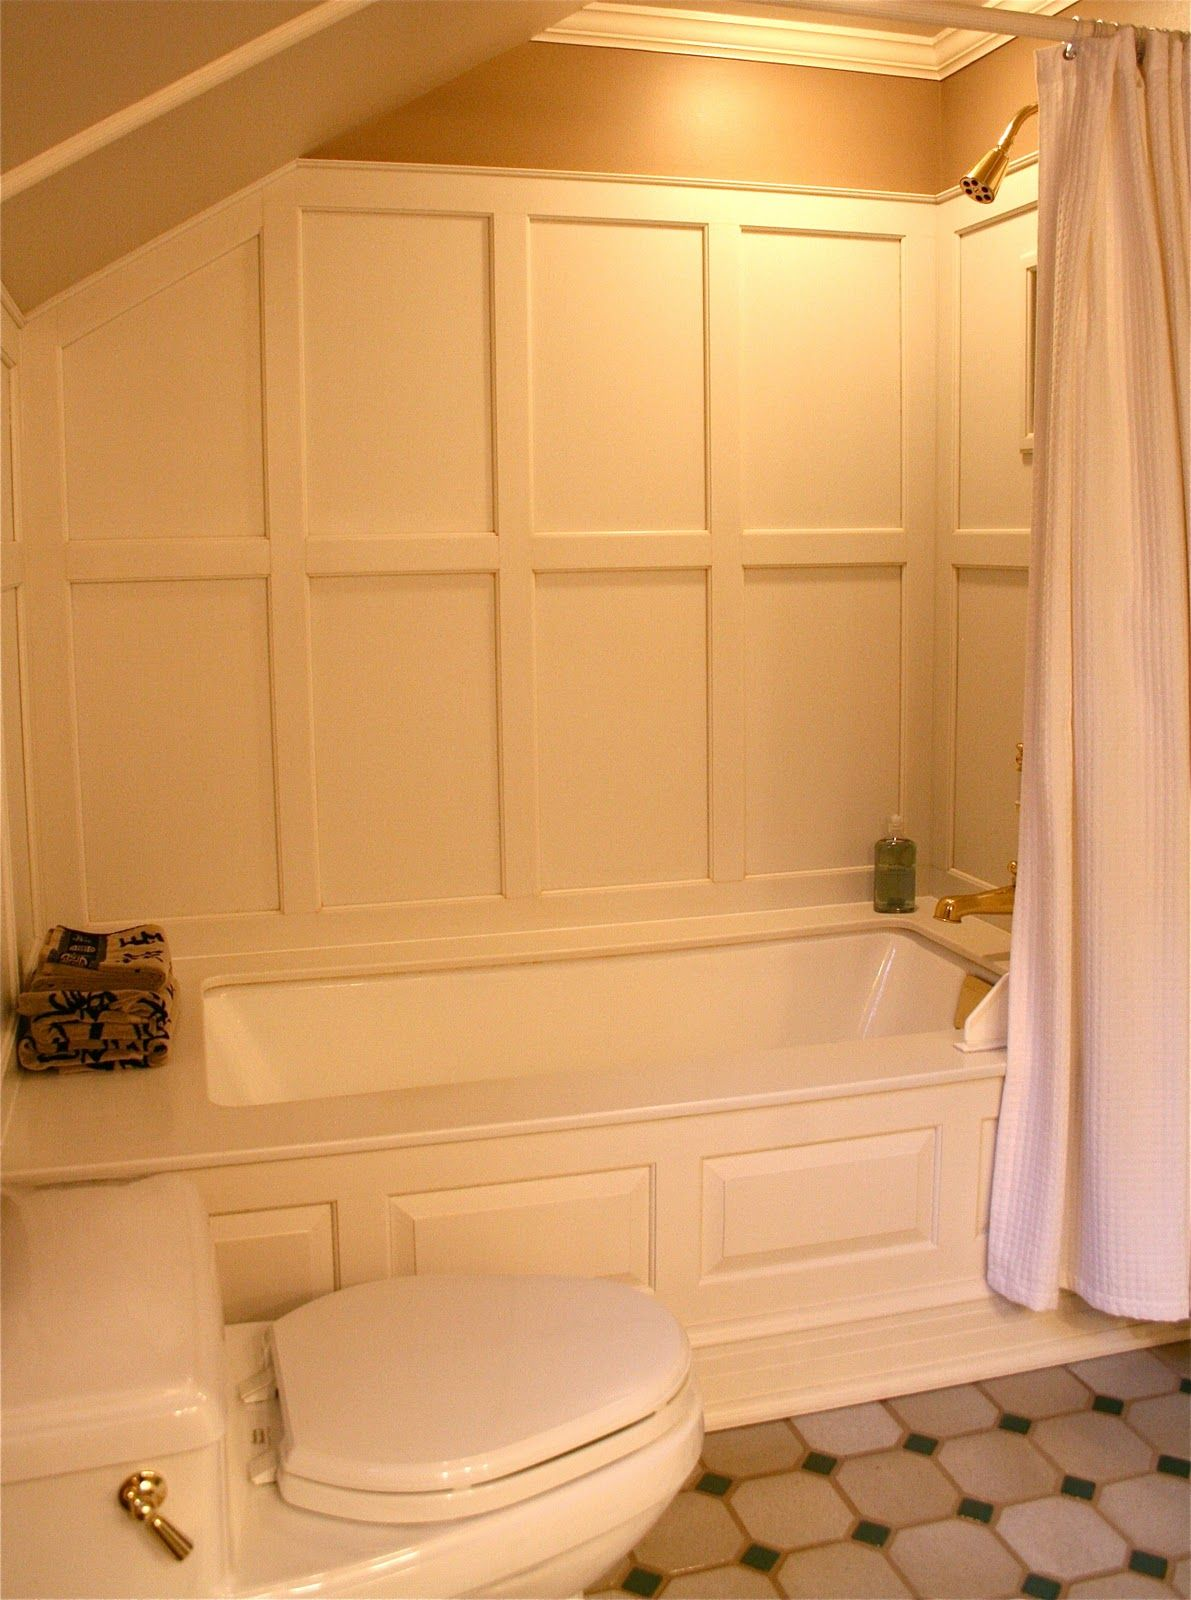 corian wall panels for bathroom | BATHTUB SURROUND PANELED WITH ...